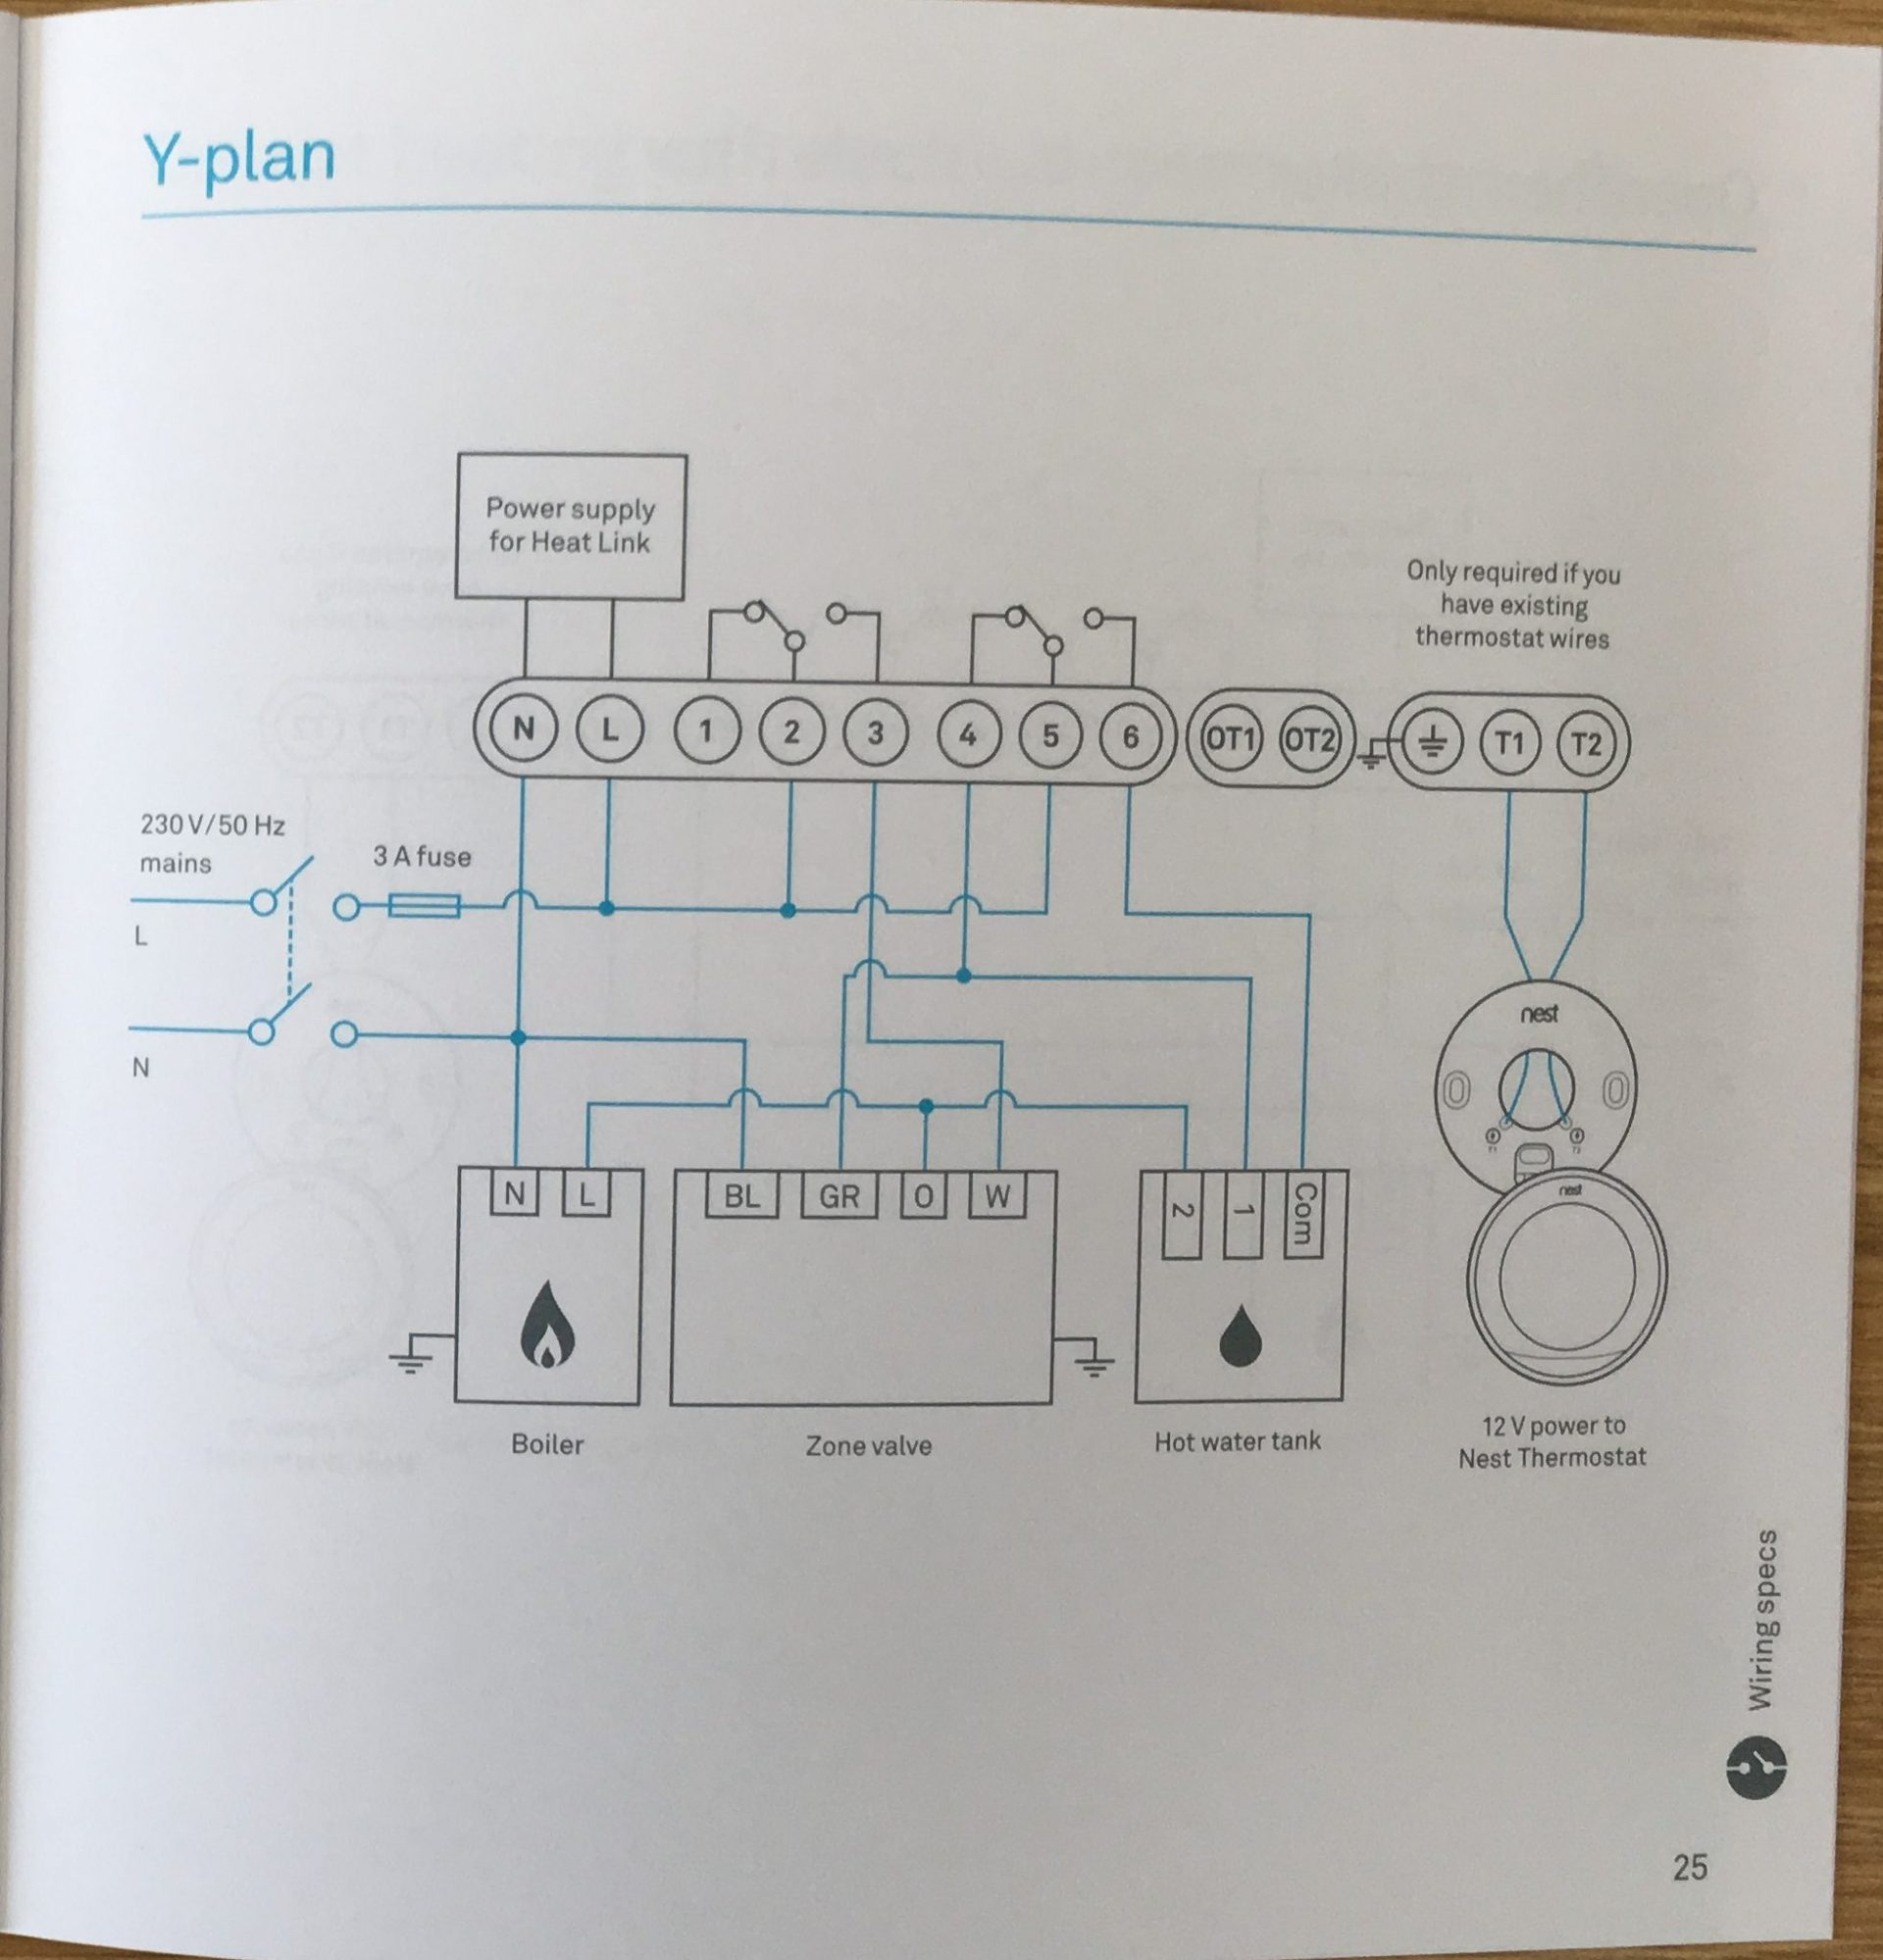 How To Install The Nest Learning Thermostat (3Rd Gen) In A Y-Plan - Nest Hot Water Wiring Diagram